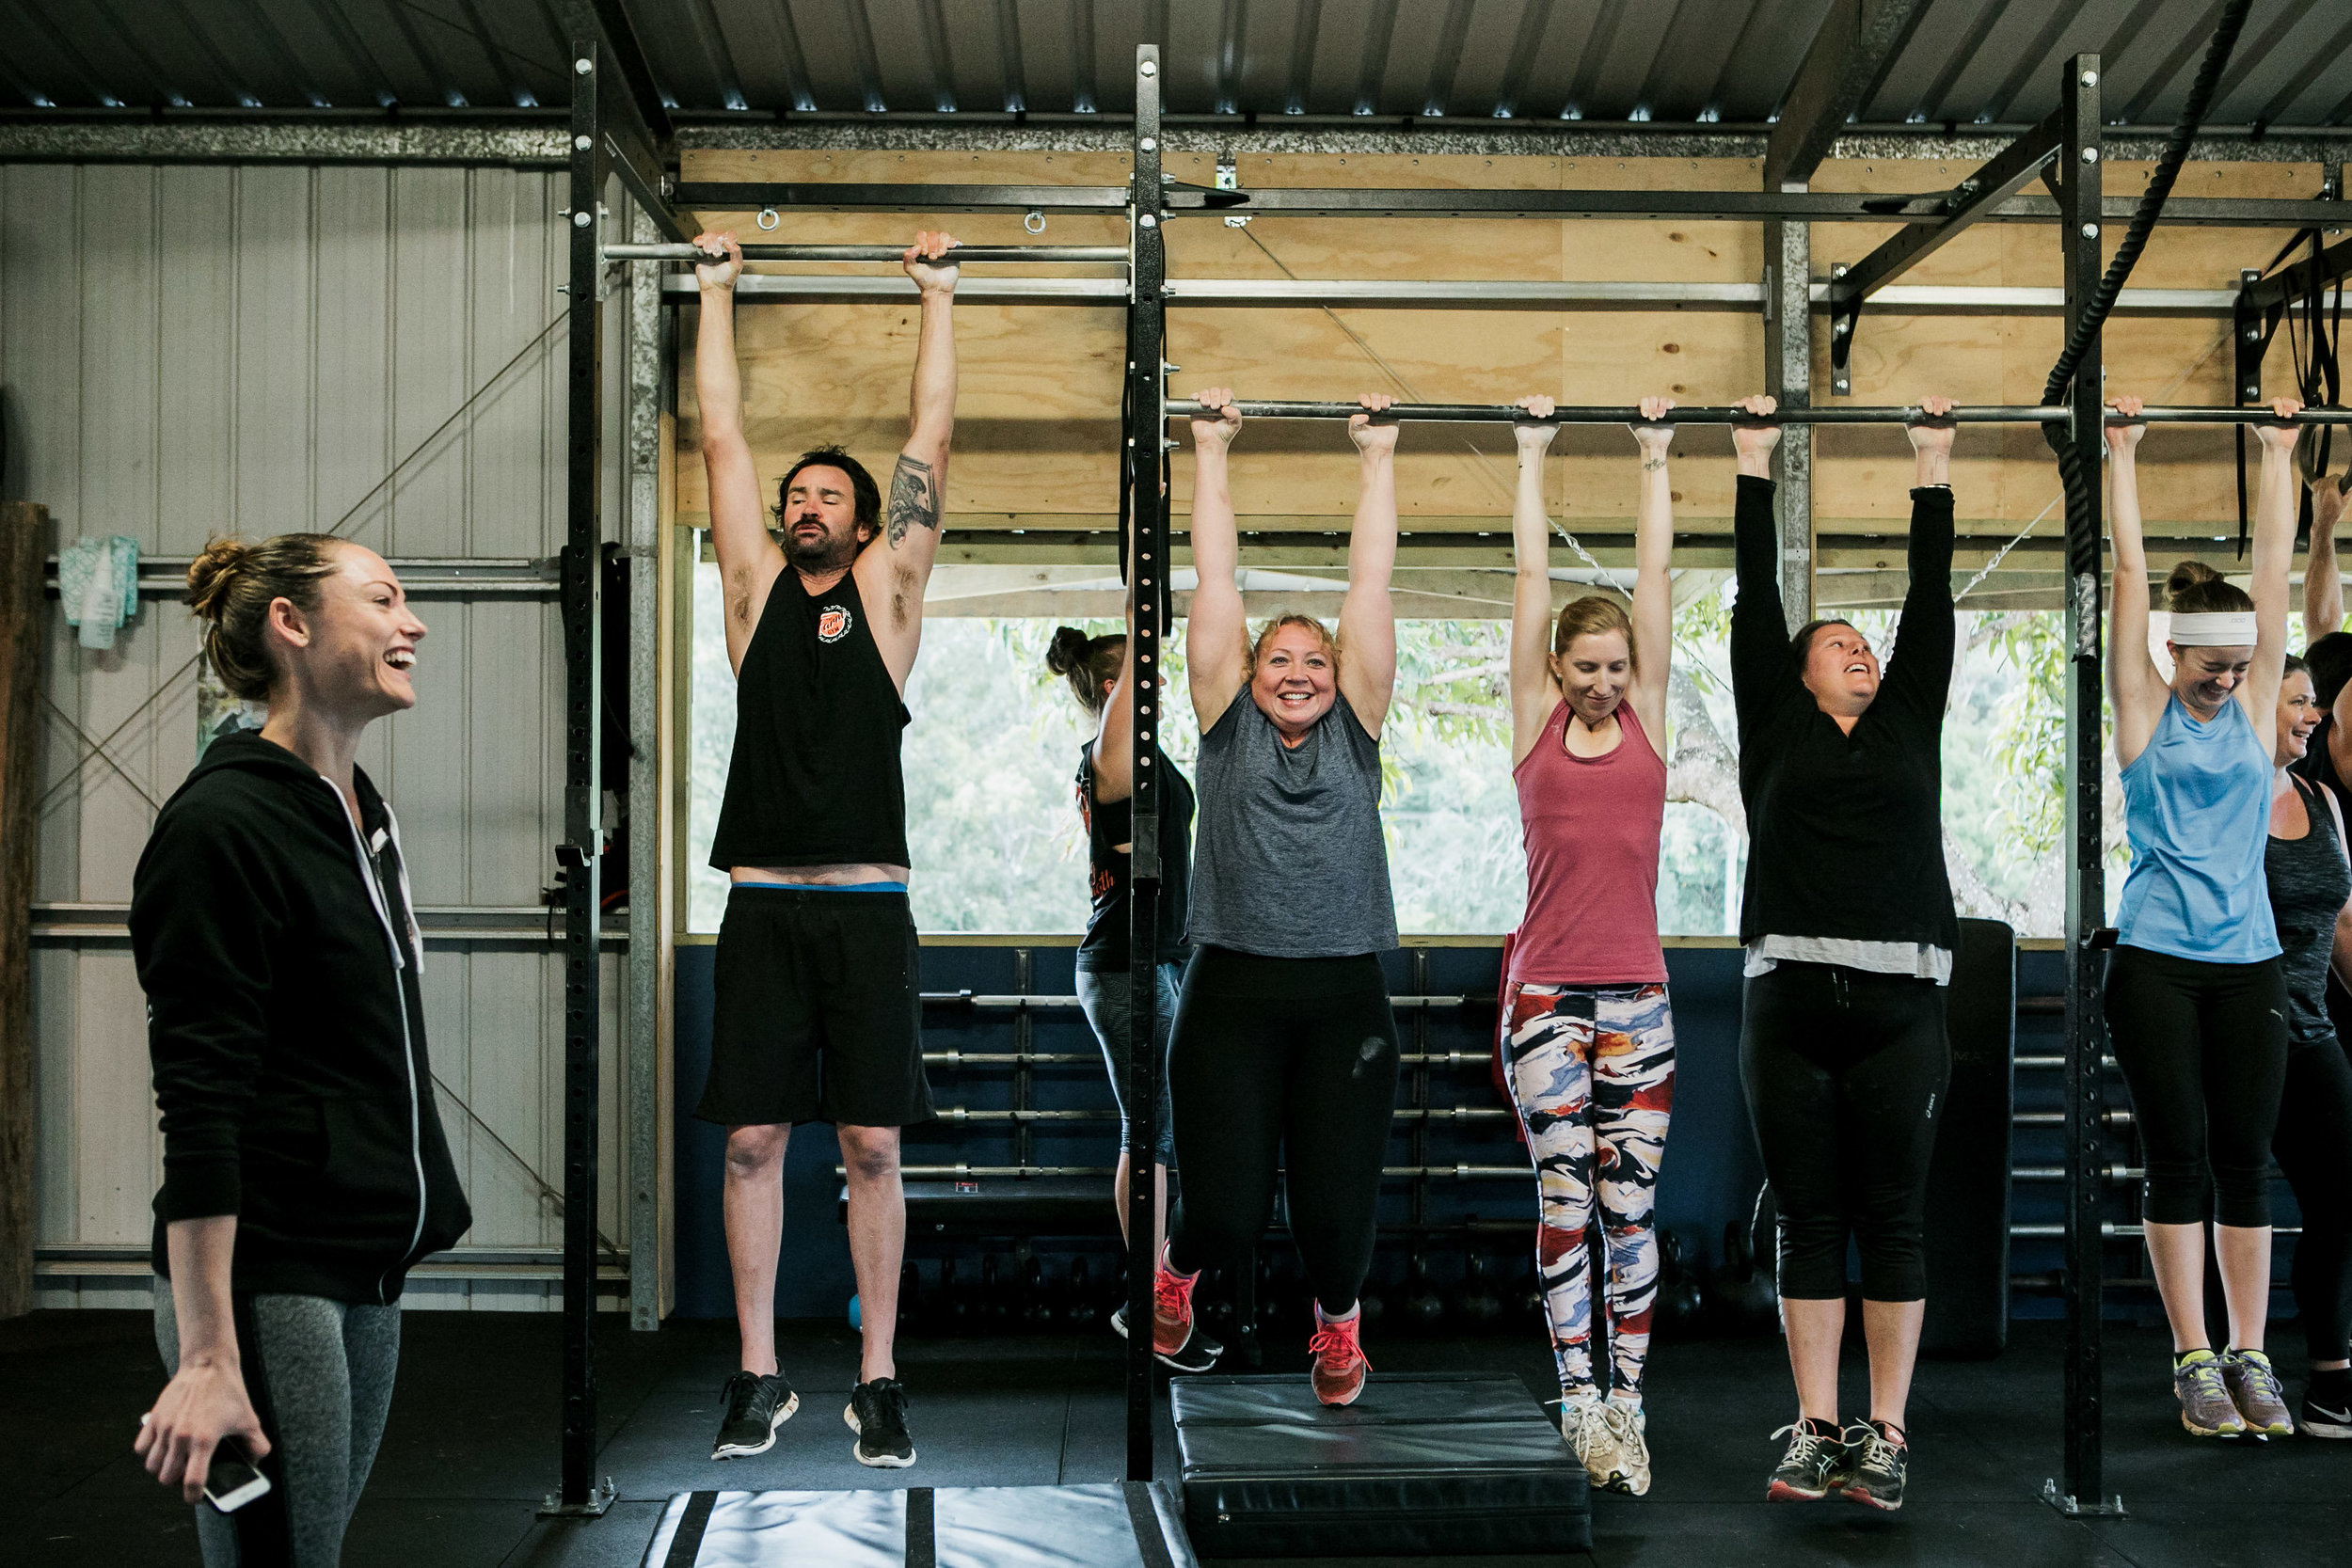 Wednesday - 5:30am - Strength & Conditioning9:30am - Strength & Conditioning (creche available)4:00pm - Youth Outdoor Training (7-12 years)4:00pm - Yoga - Nichola Spain - CLICK HERE TO BOOK CASUAL SESSION5:15pm - Outdoor Training